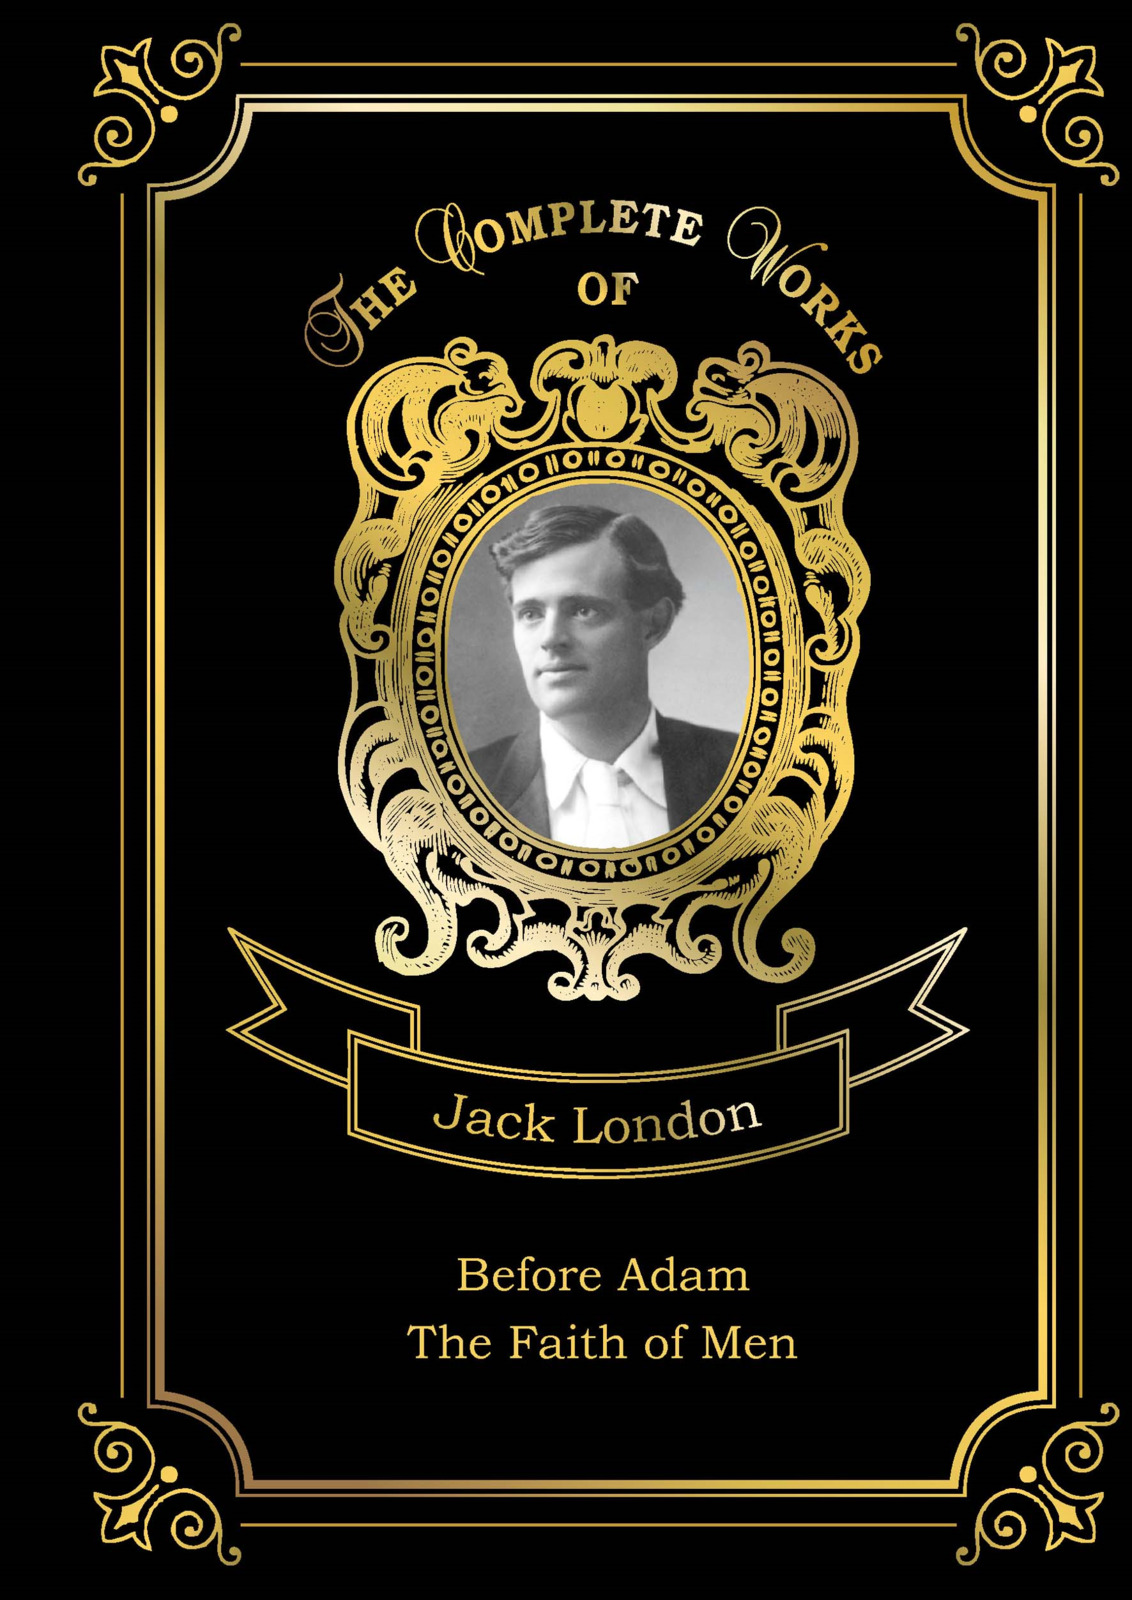 Jack London Before Adam and The Faith of Men a suit of vintage faux leather wing bracelets for men